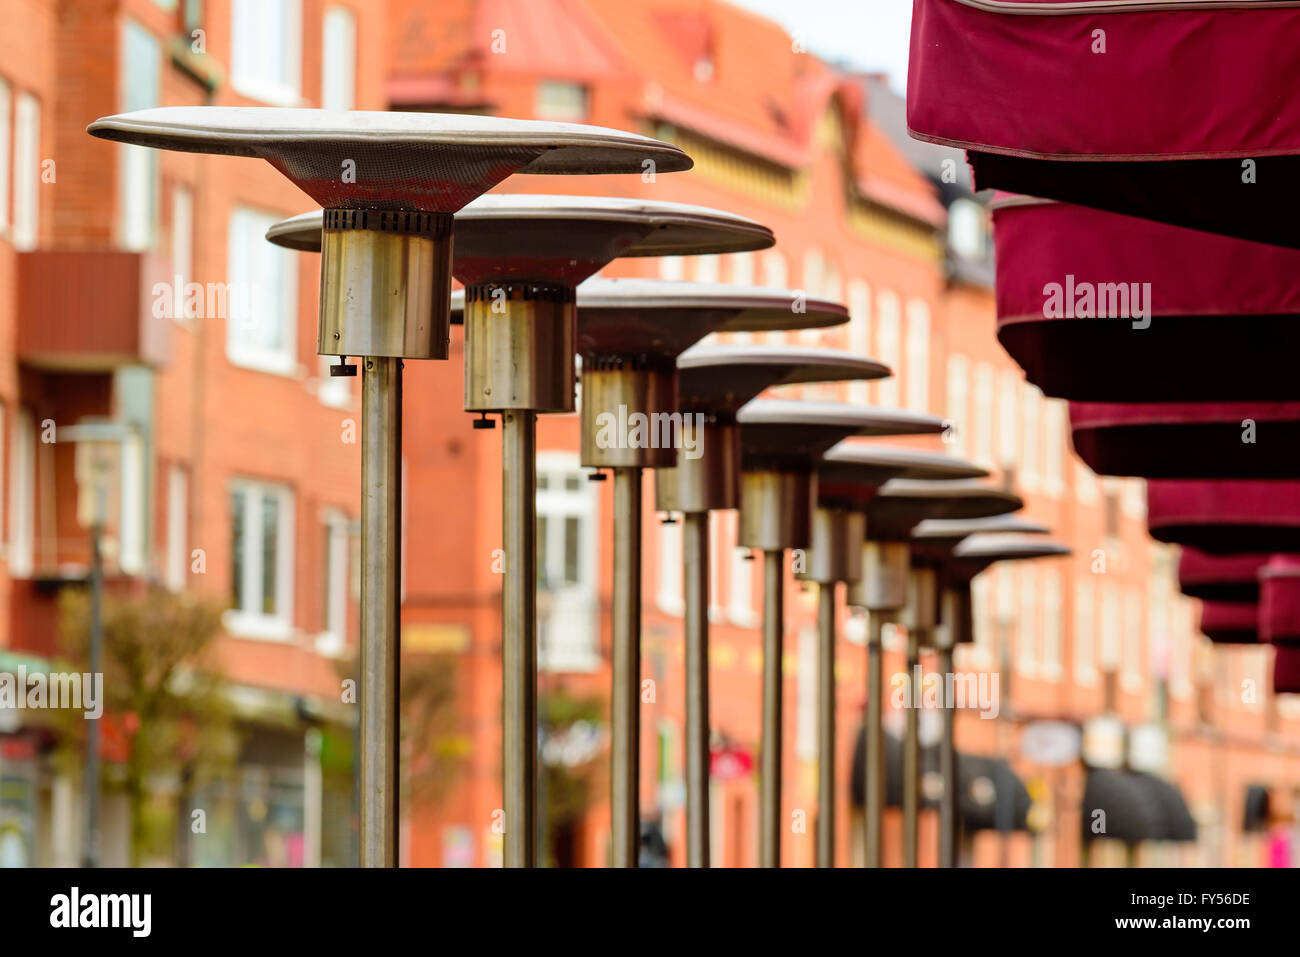 Delightful Row Of Patio Heaters Outside A Restaurant With City In Background. Also  Called Mushroom Heaters Or Umbrella Heaters.